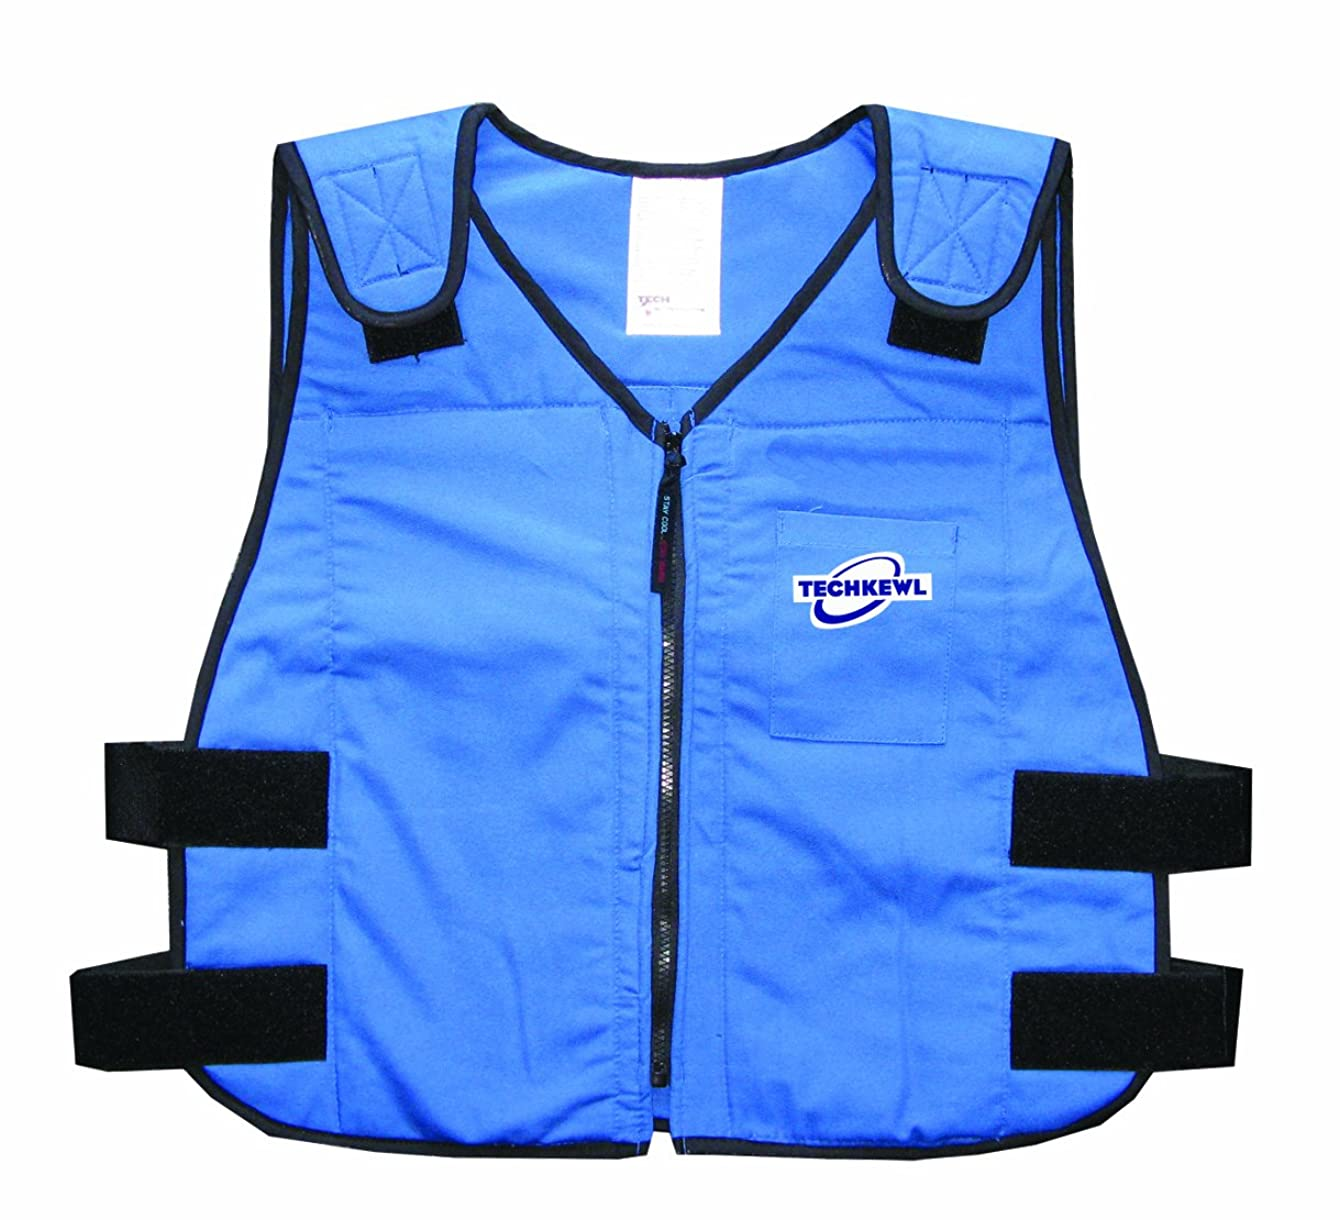 TechKewl 6626-RB-L/XL Phase Change Cooling Vest, Blue